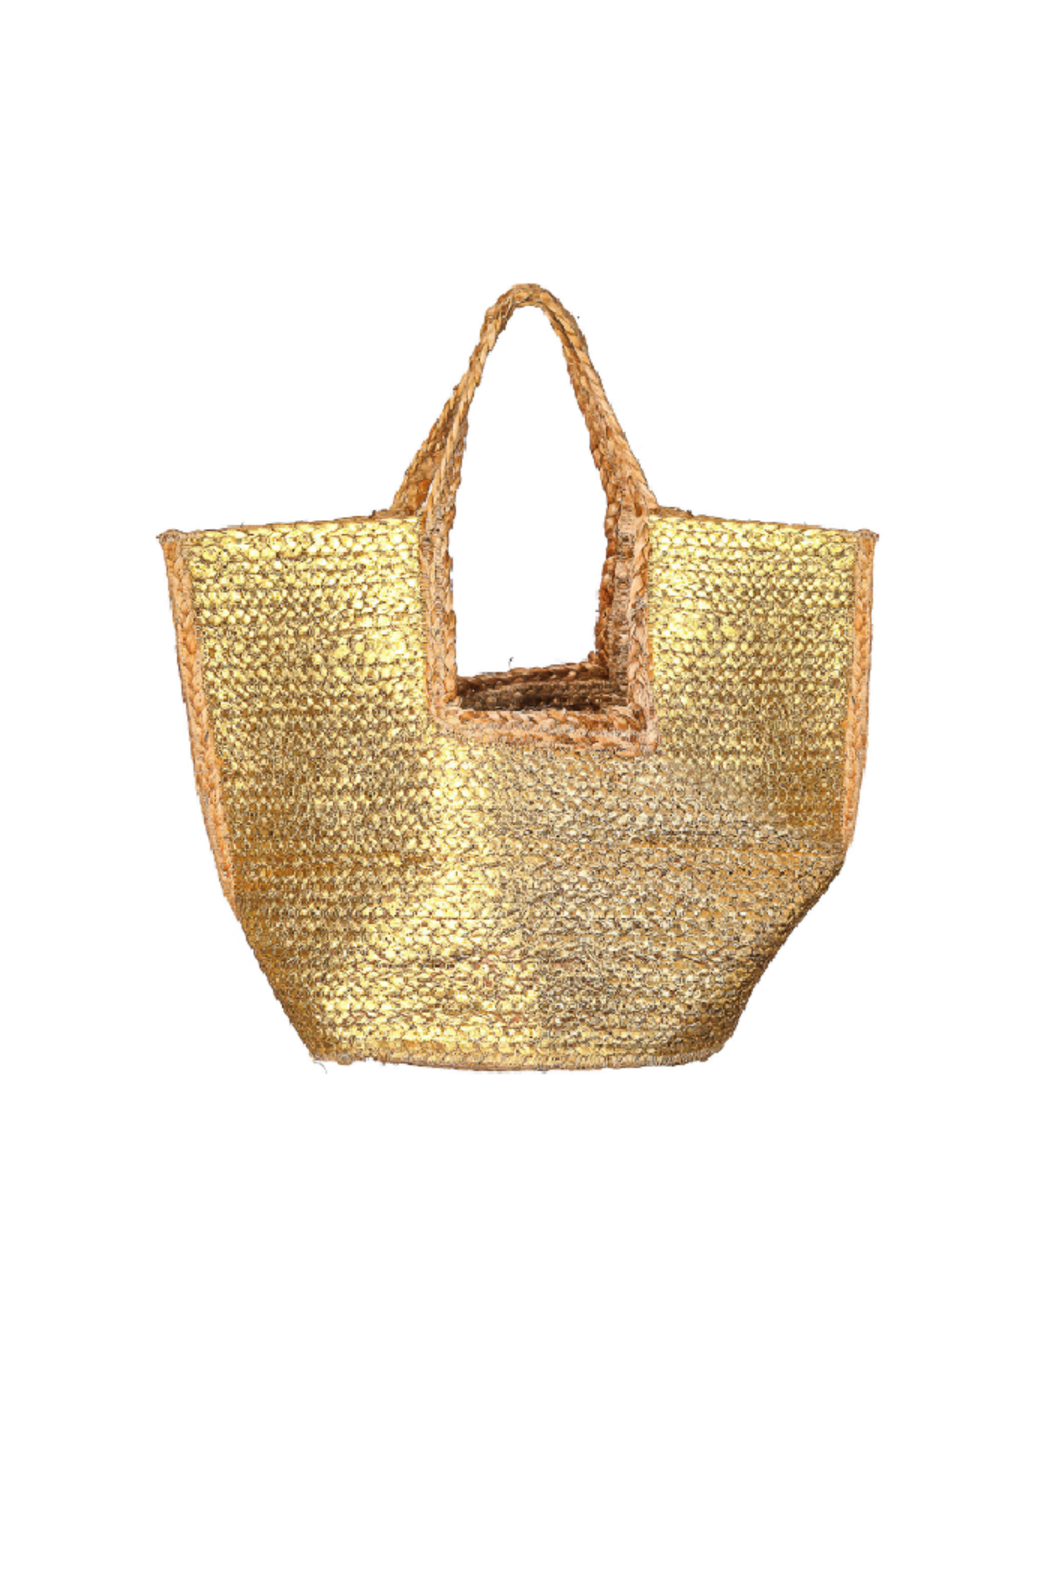 Fame Accessories India Braided Jute Tote - Main Image